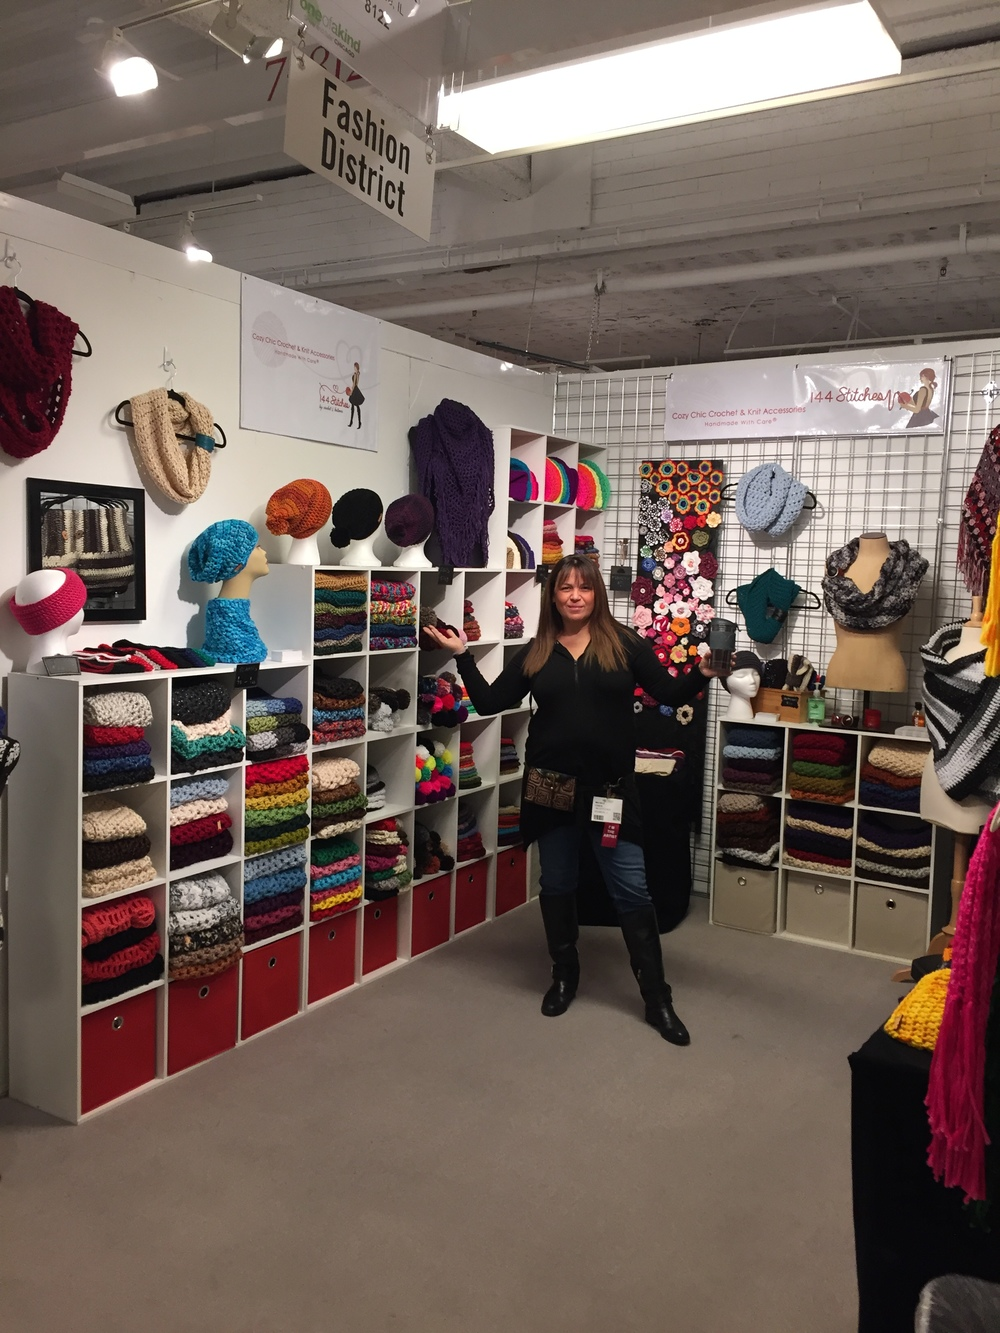 144 Stitches 2015 Booth at OOAK Show